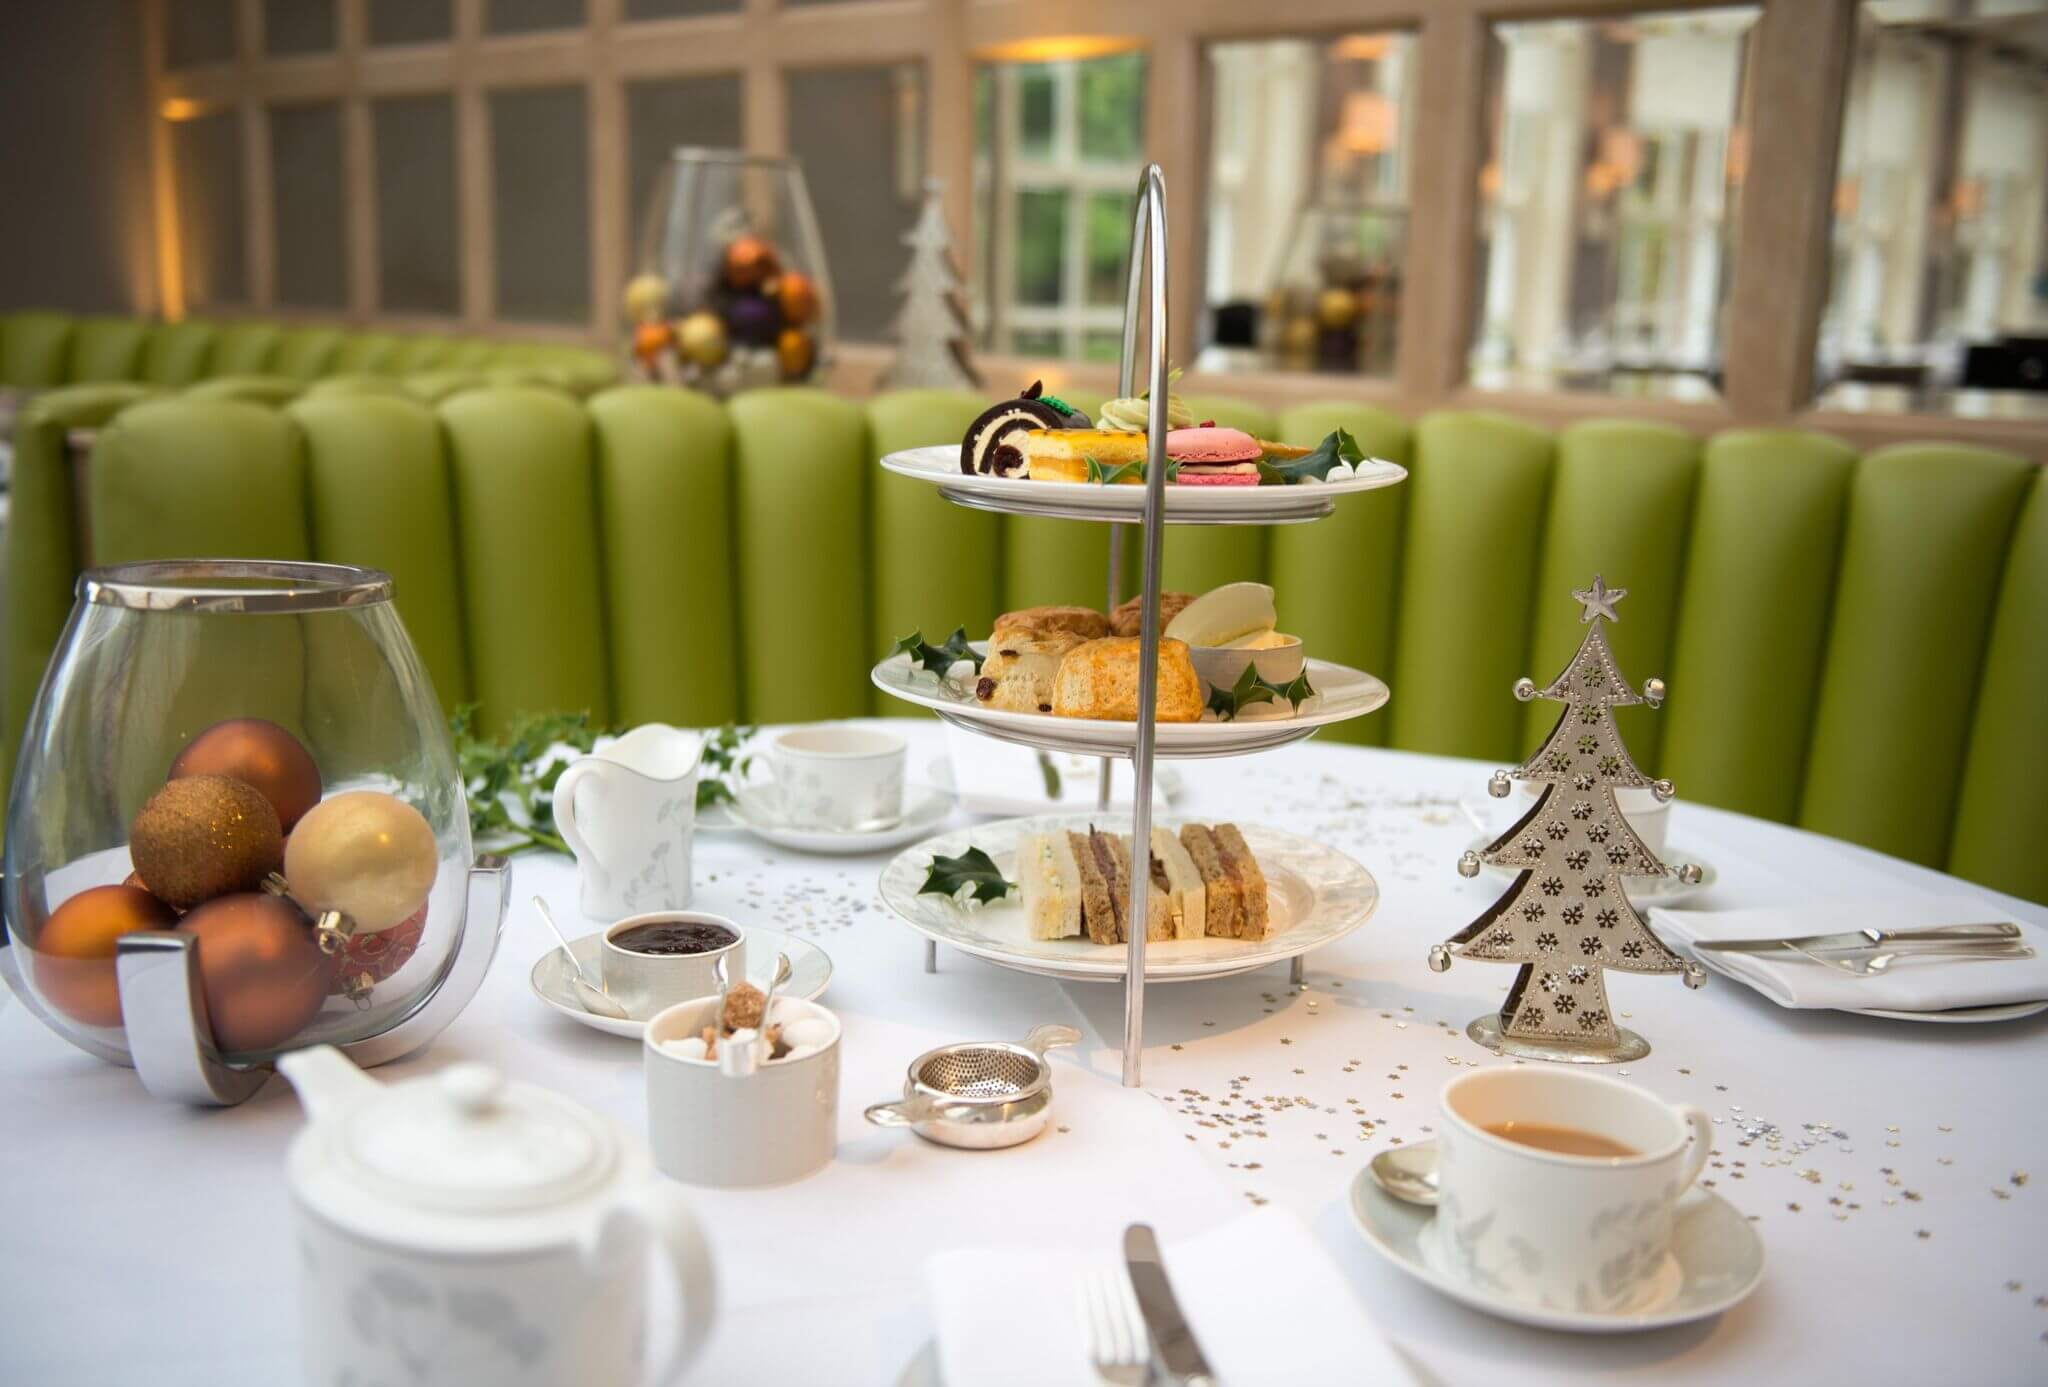 festive afternoon tea in London, festive afternoon teas in London, christmas afternoon tea in London, festive afternoon tea in London, best festive afternoon tea in London, best Christmas afternoon tea in London, christmas afternoon tea